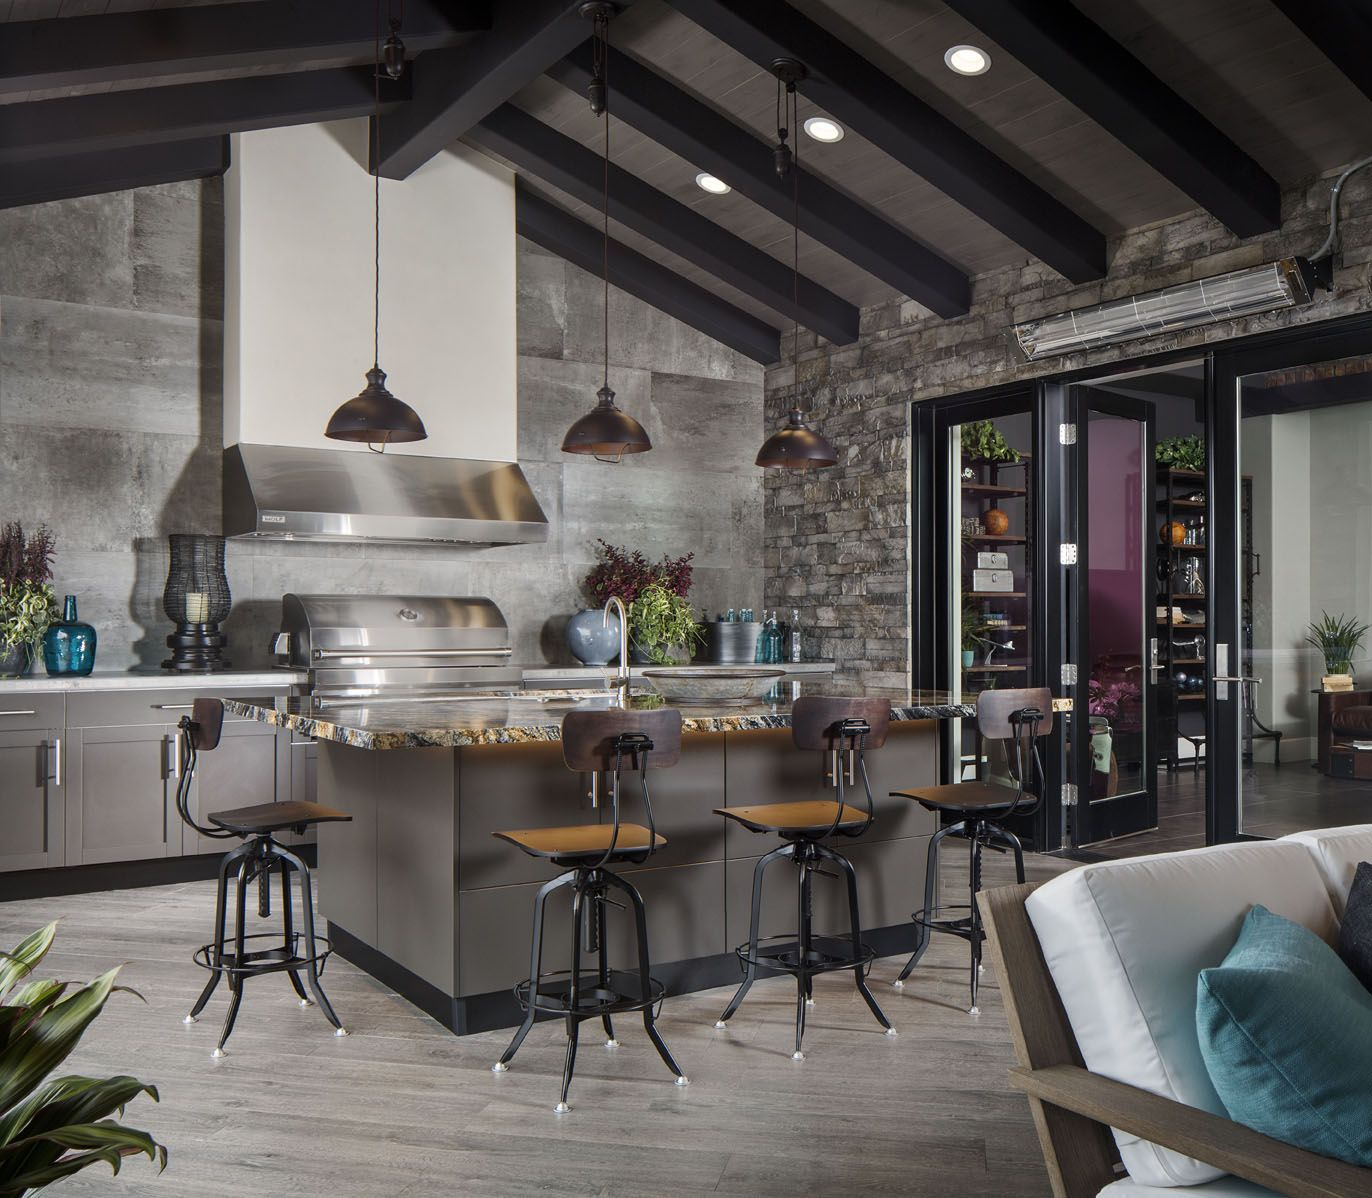 This outdoor kitchen in an mdd custom home